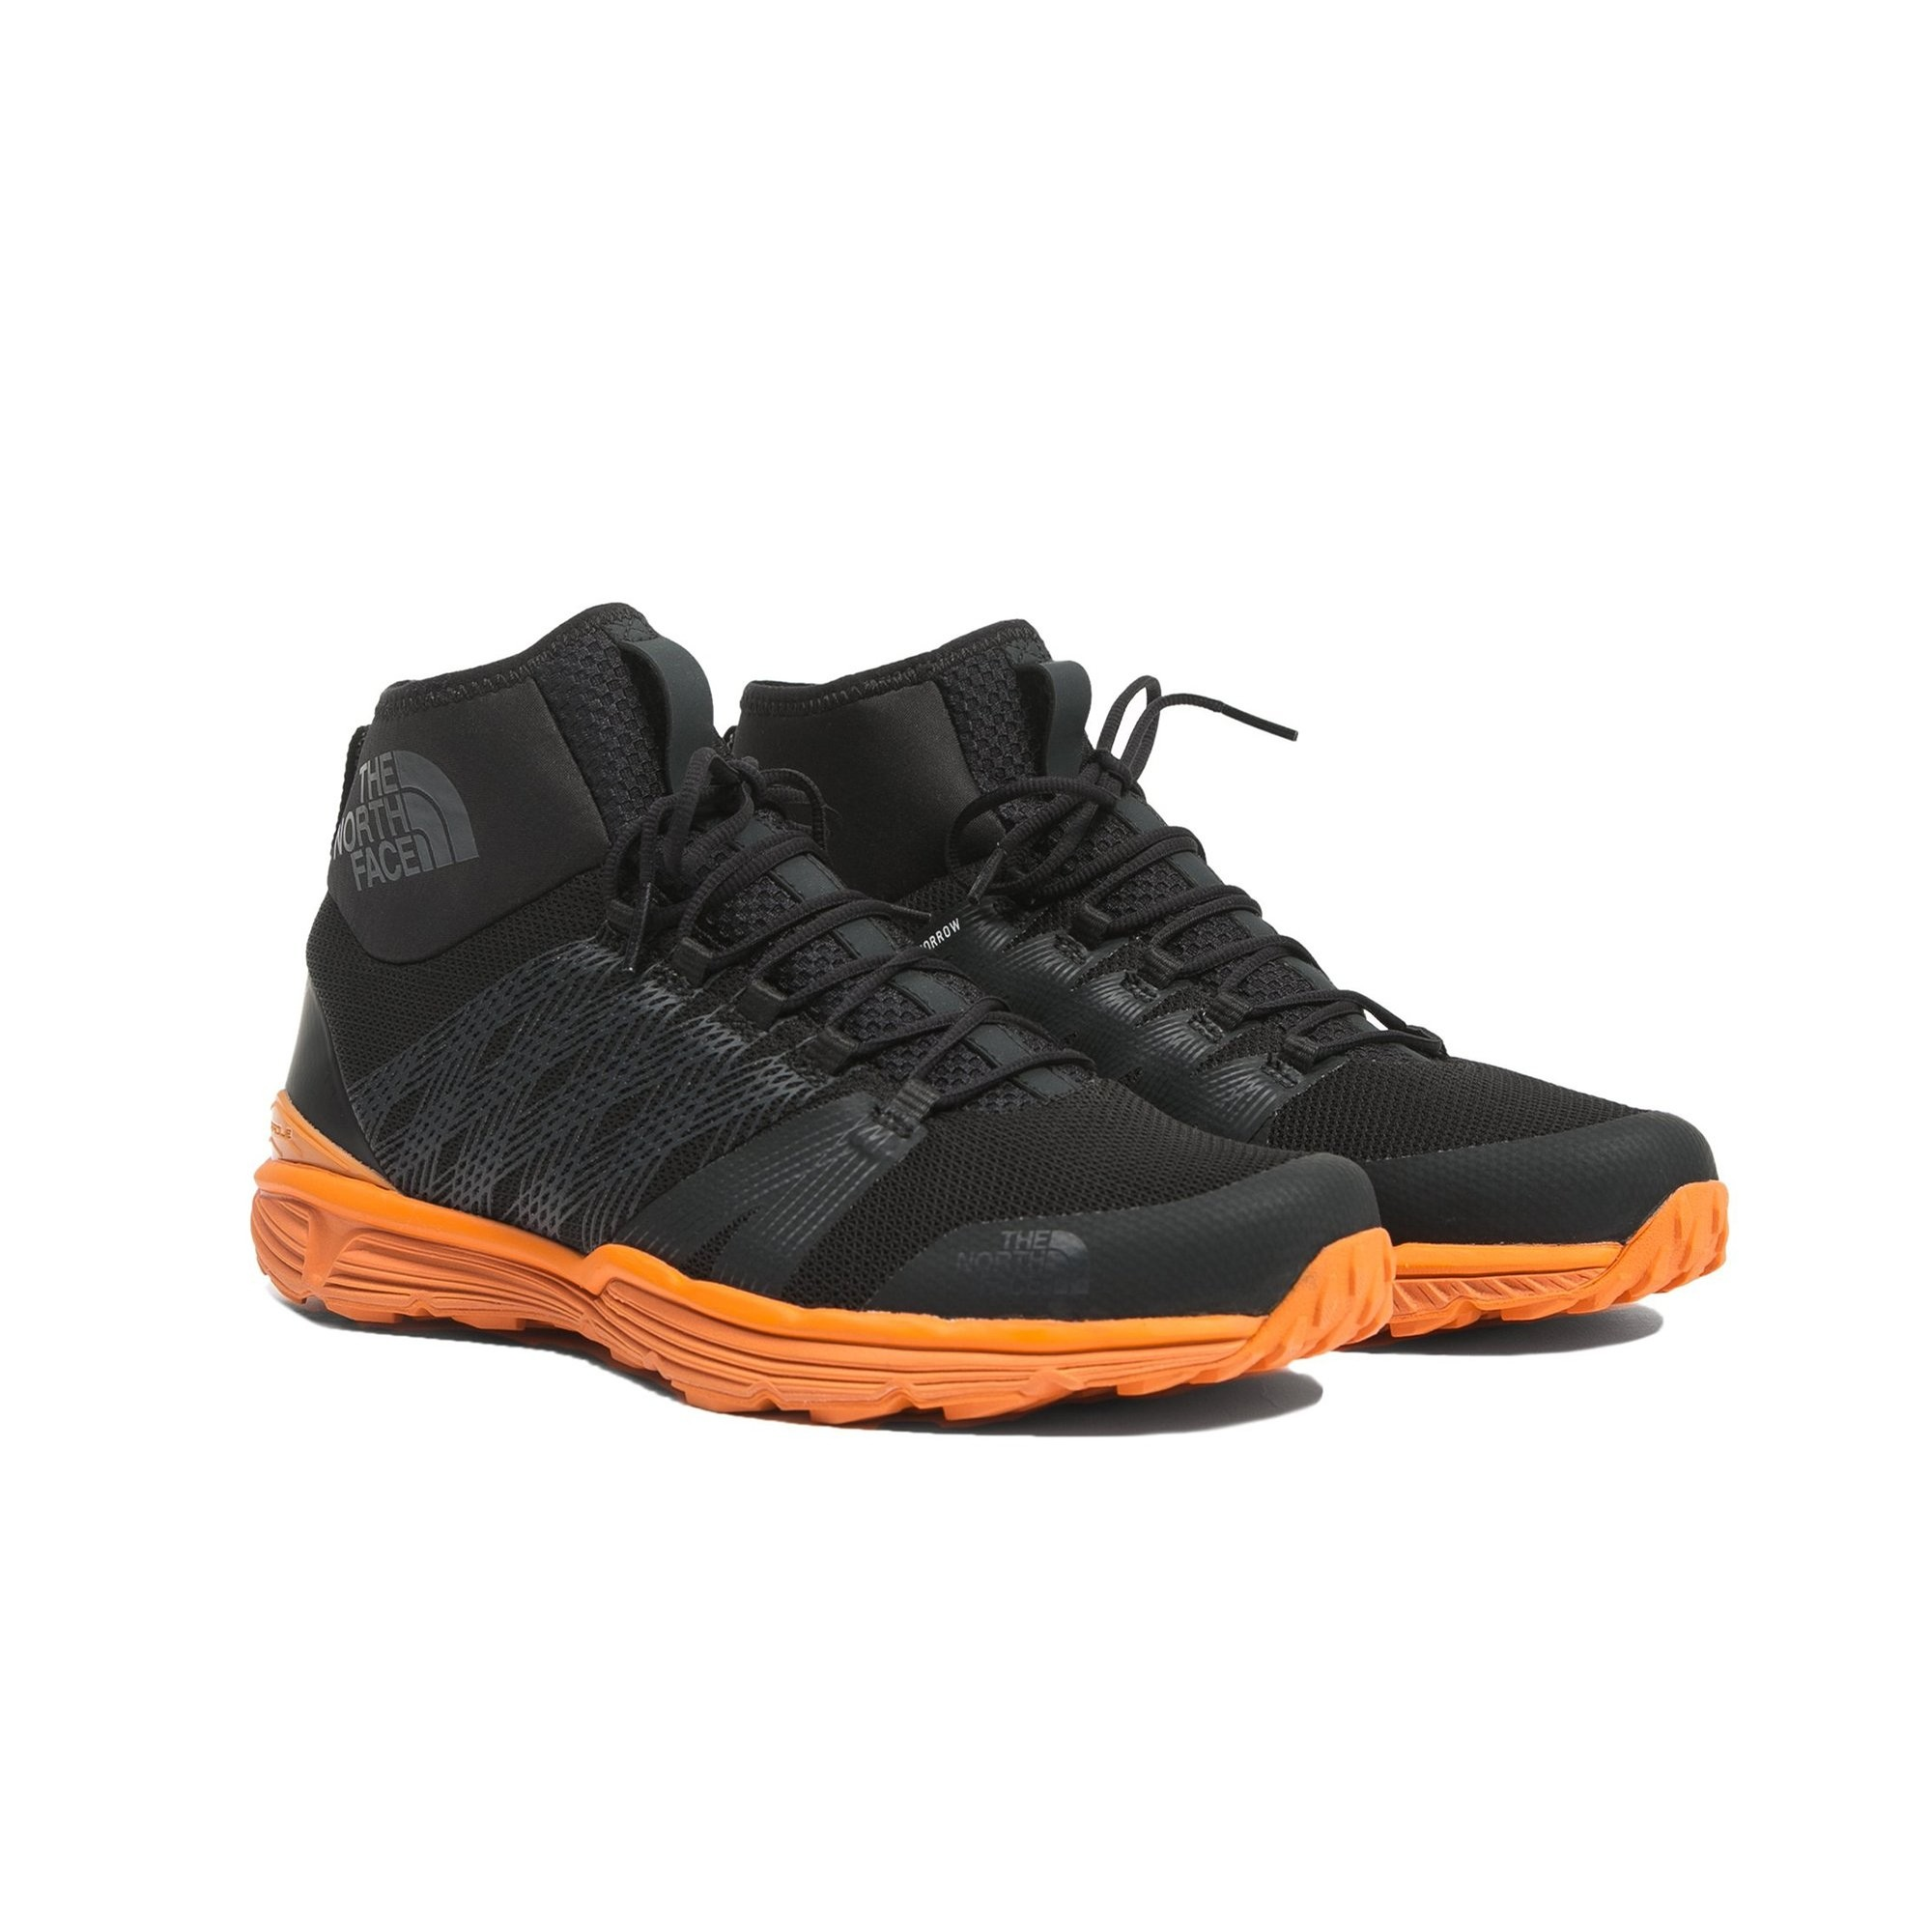 TNF Litewave Ampere II HC (Black/Orange)